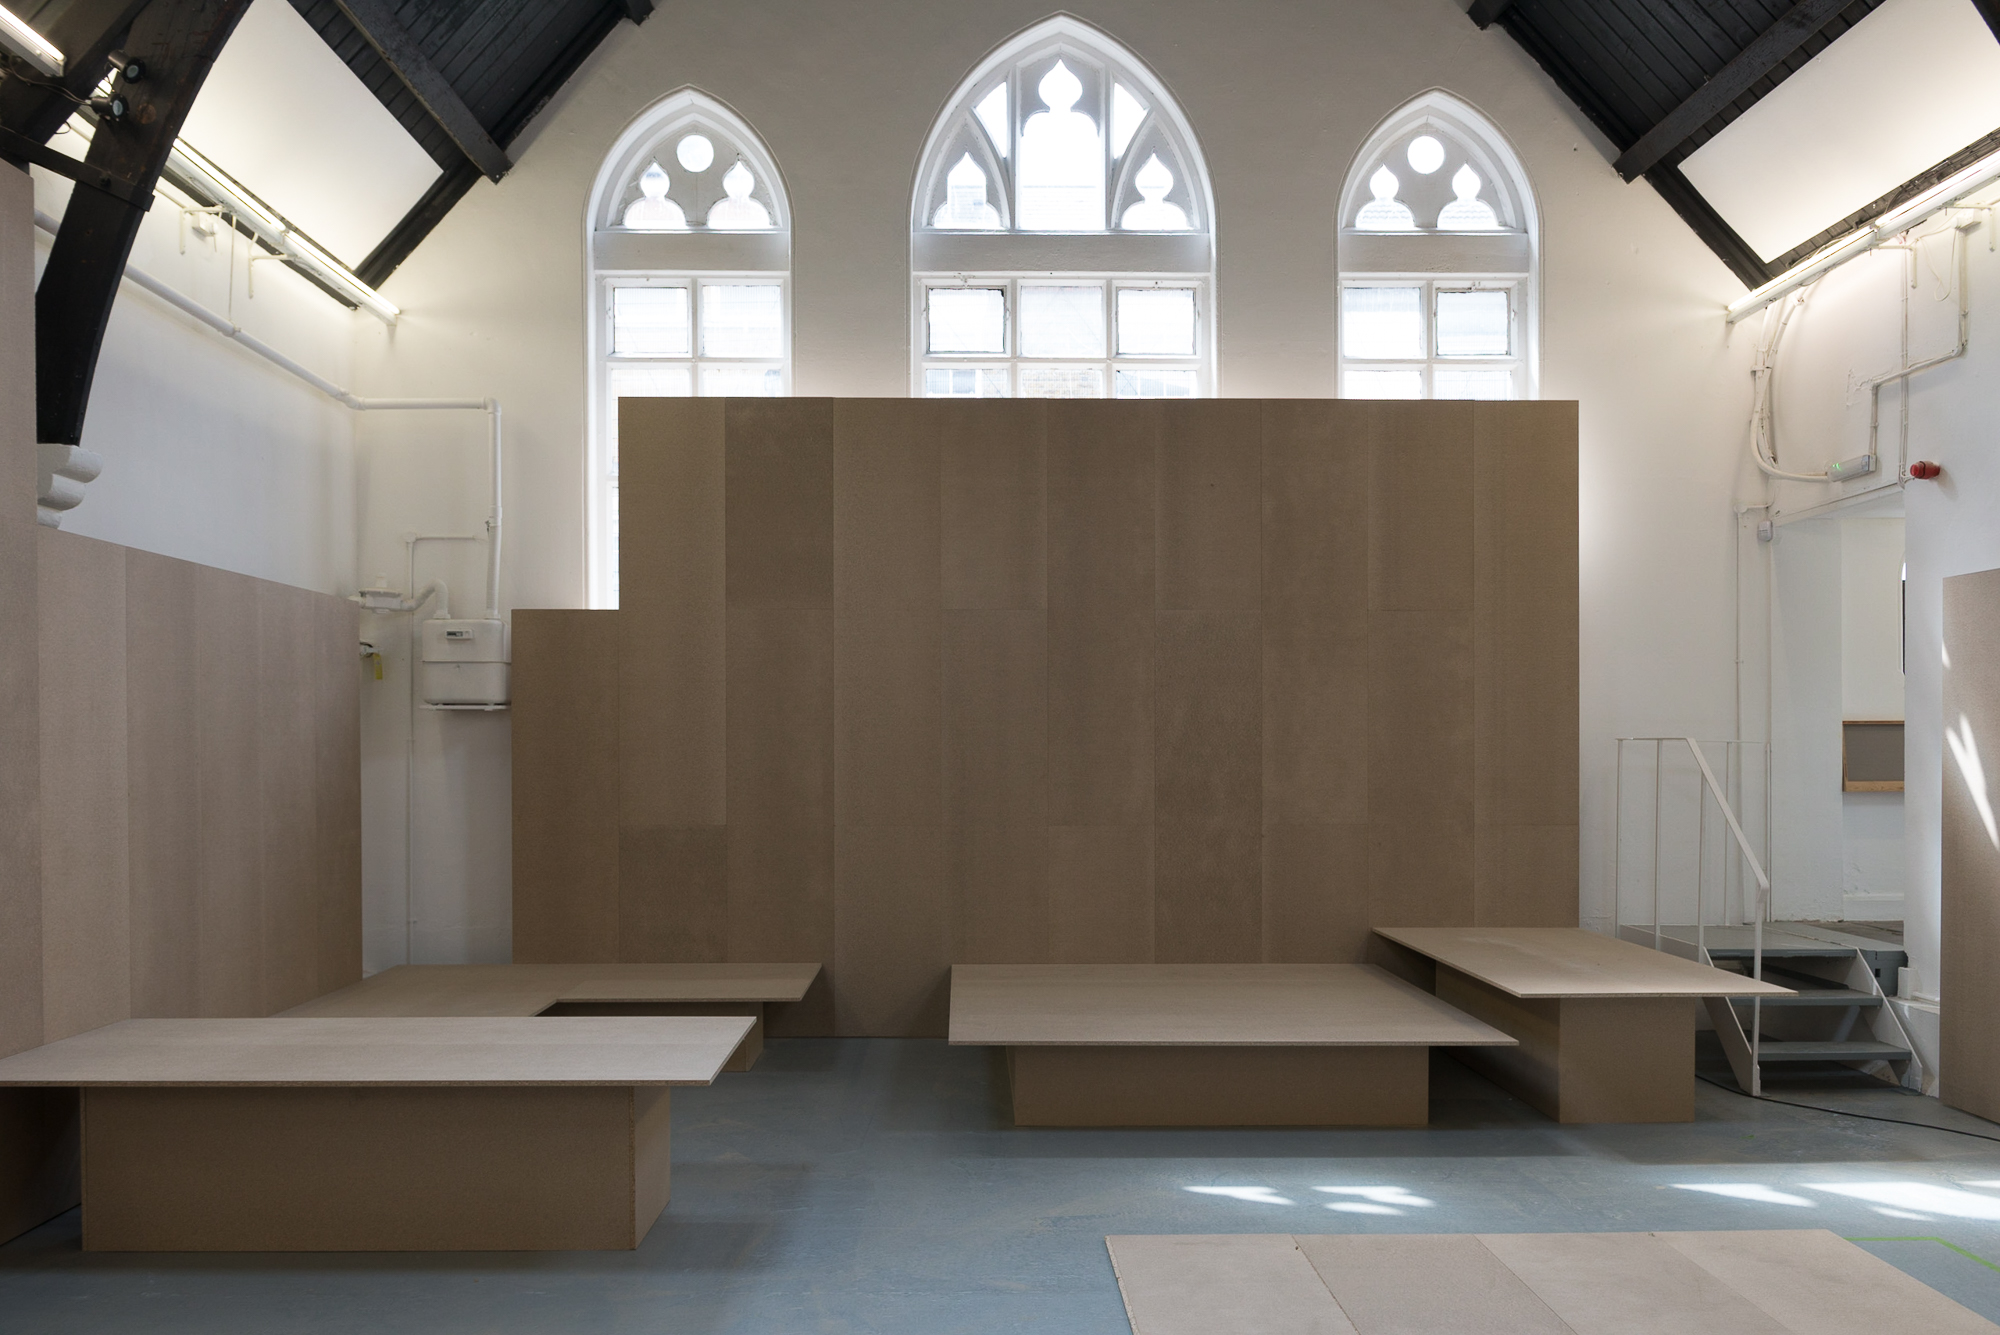 John Sheehy - Studio Voltaire  April 2017  An 'in progress' shot - the exhibition design called for an honest approach to materials and an alternative to a traditional hang - as well as requiring the display of a large quantity of varied works. The exhibition continues until 25 June 2017.